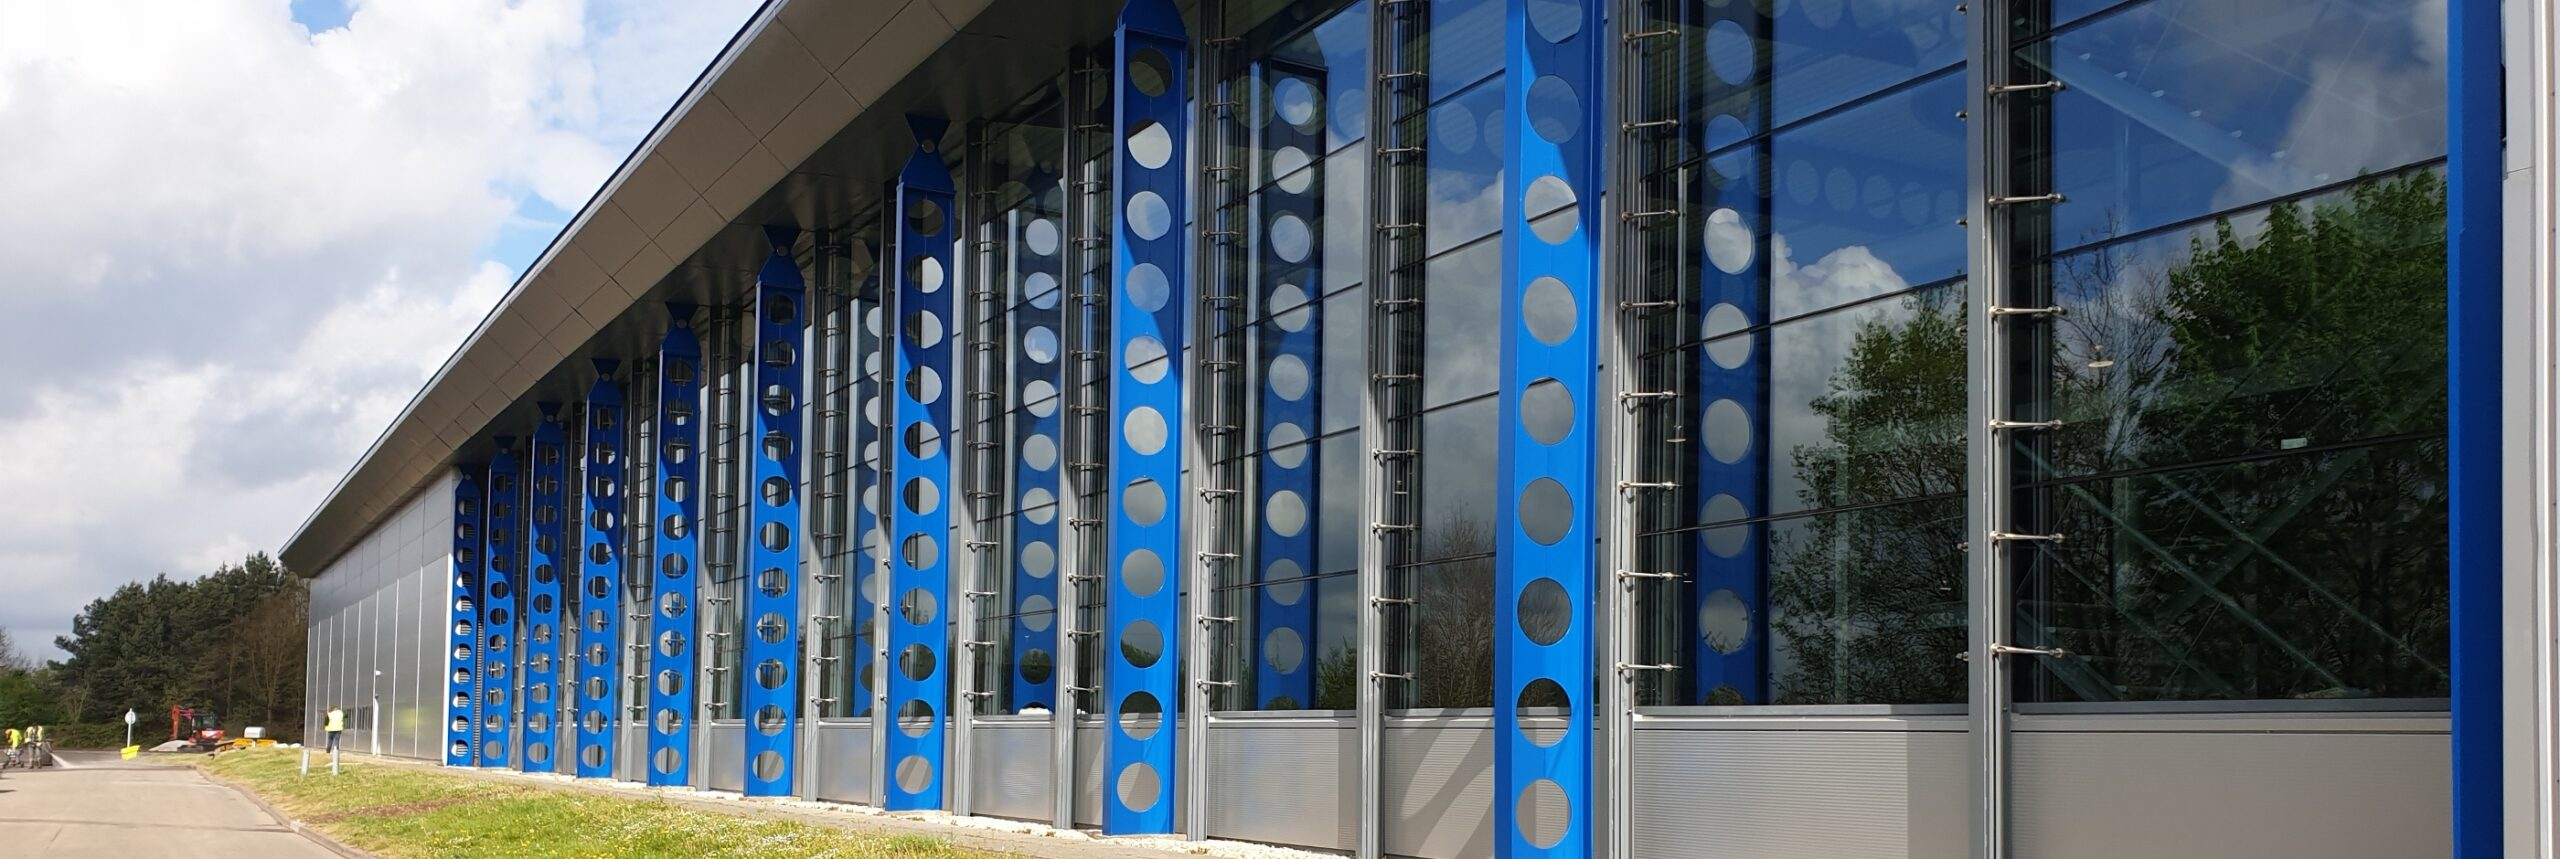 building with a blue exterior metal brace